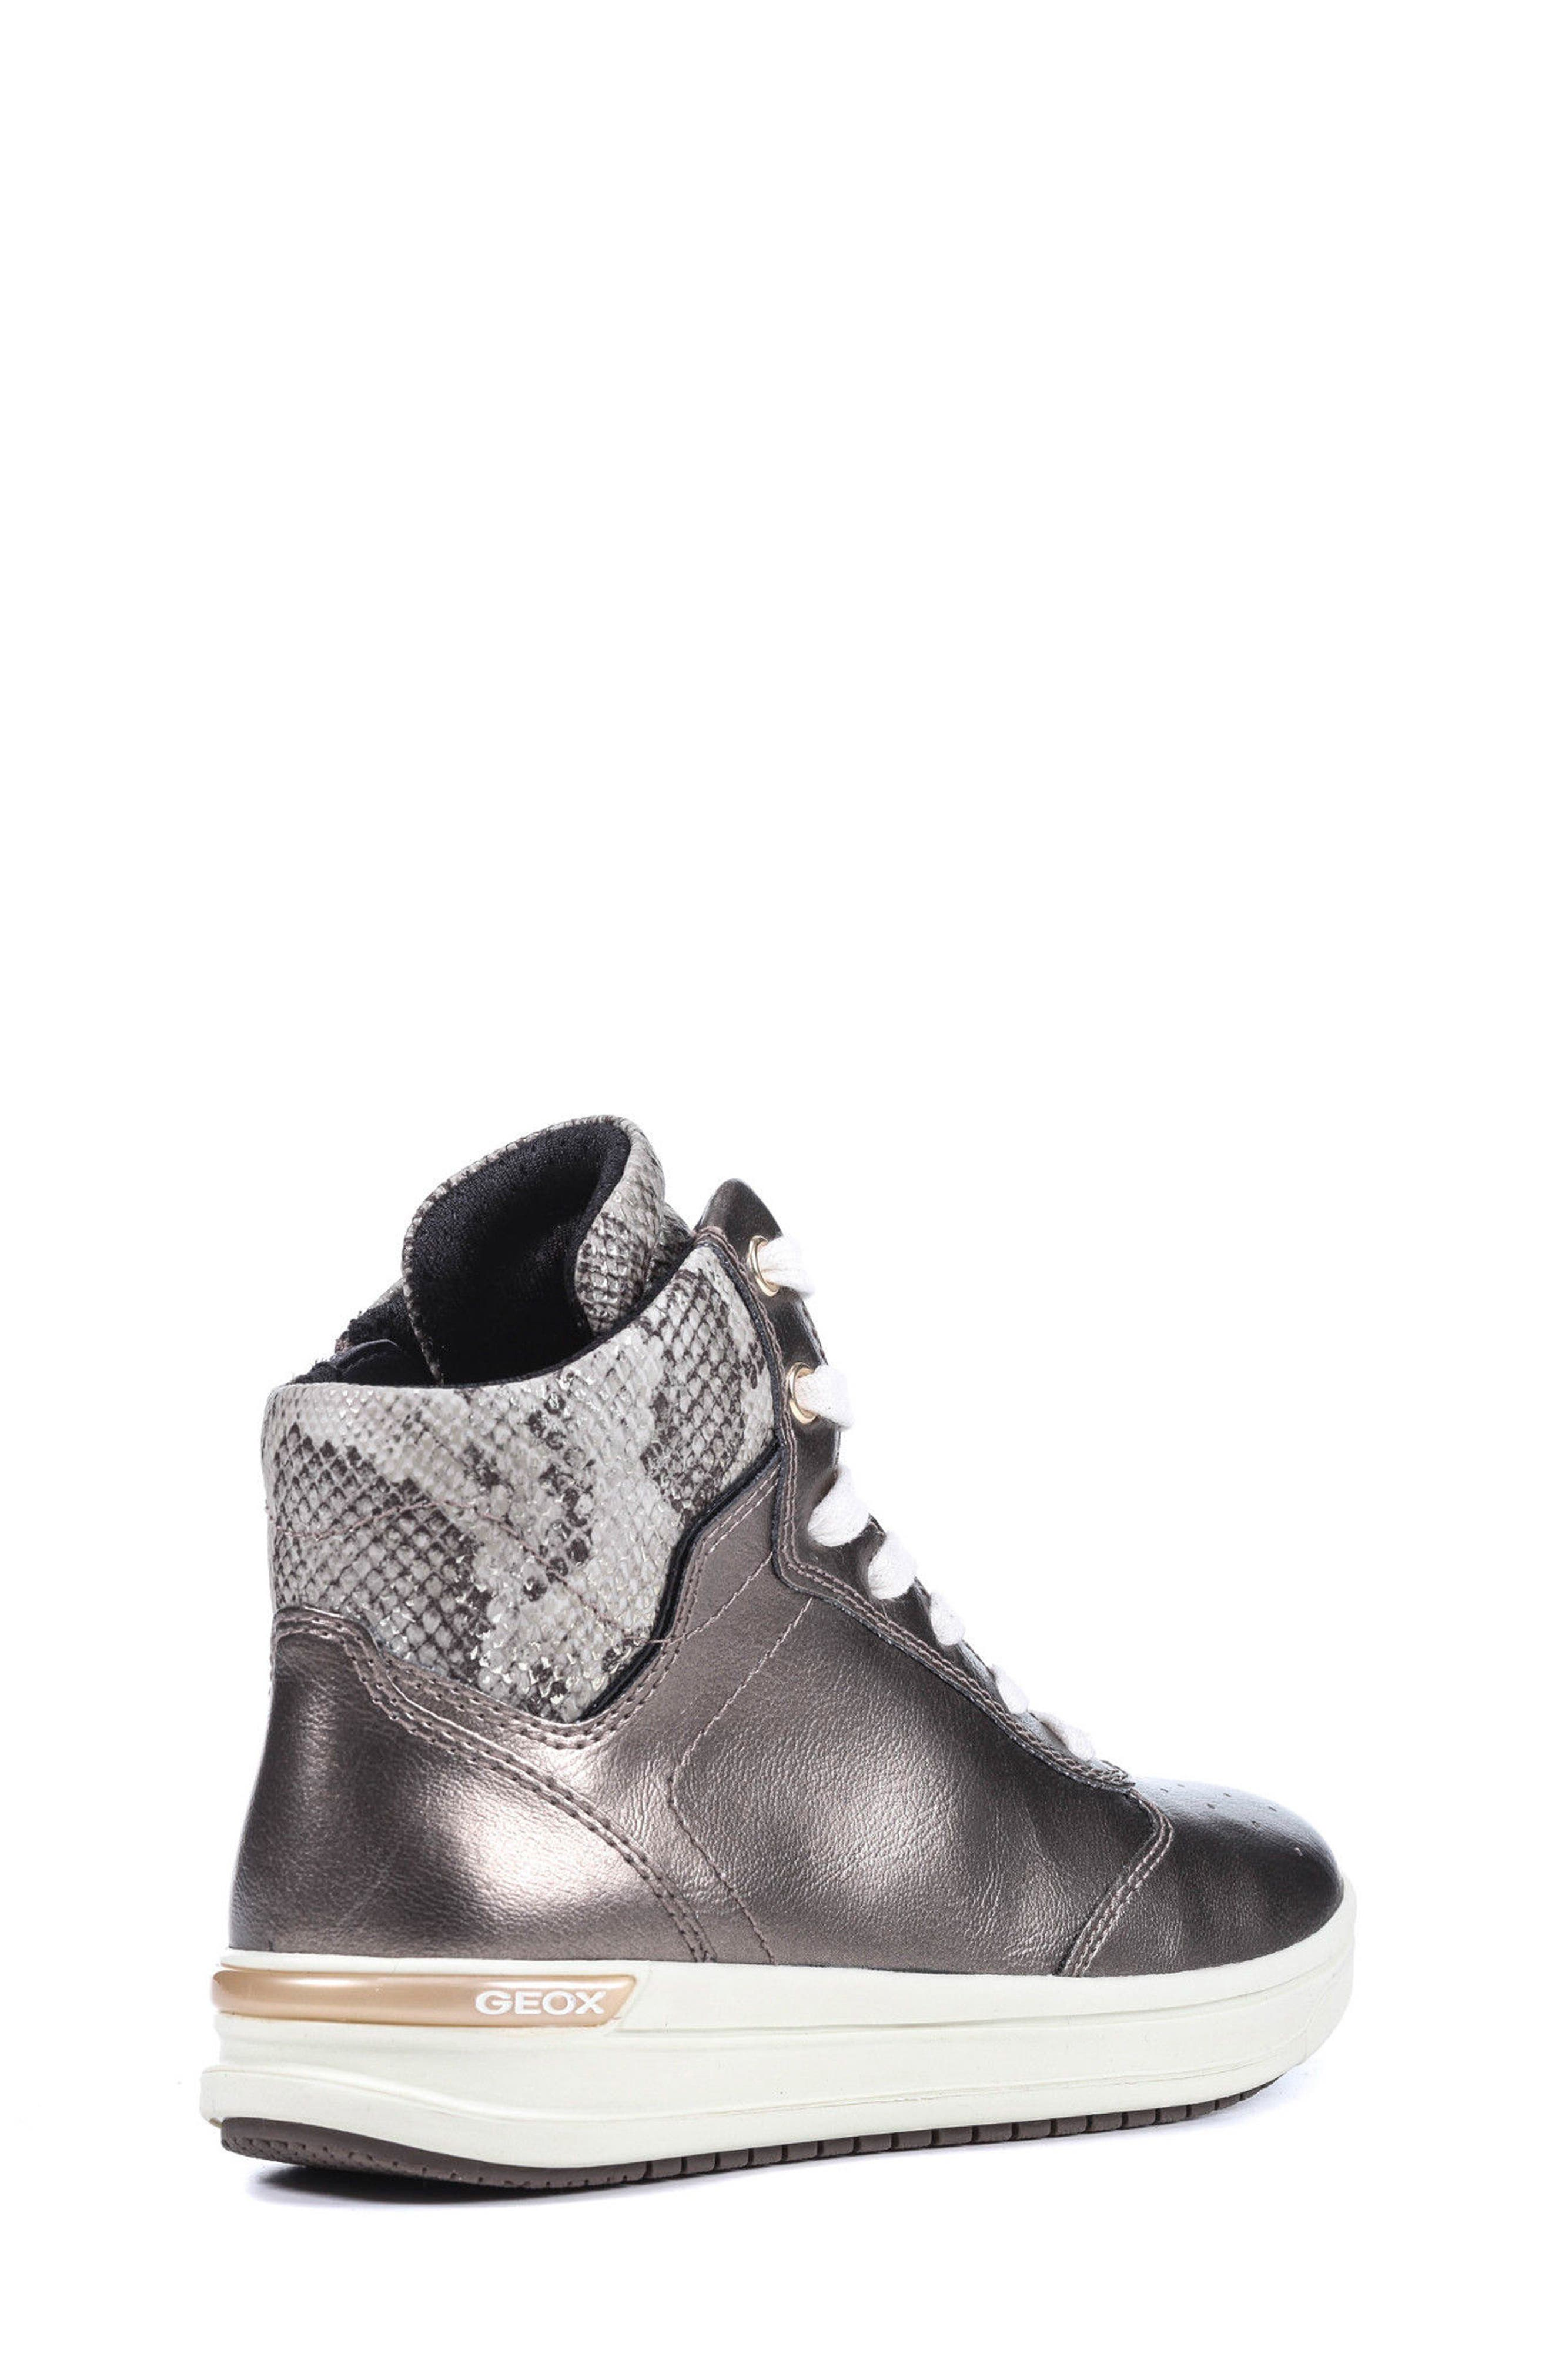 Cave Up Girl High Top Sneaker,                             Alternate thumbnail 4, color,